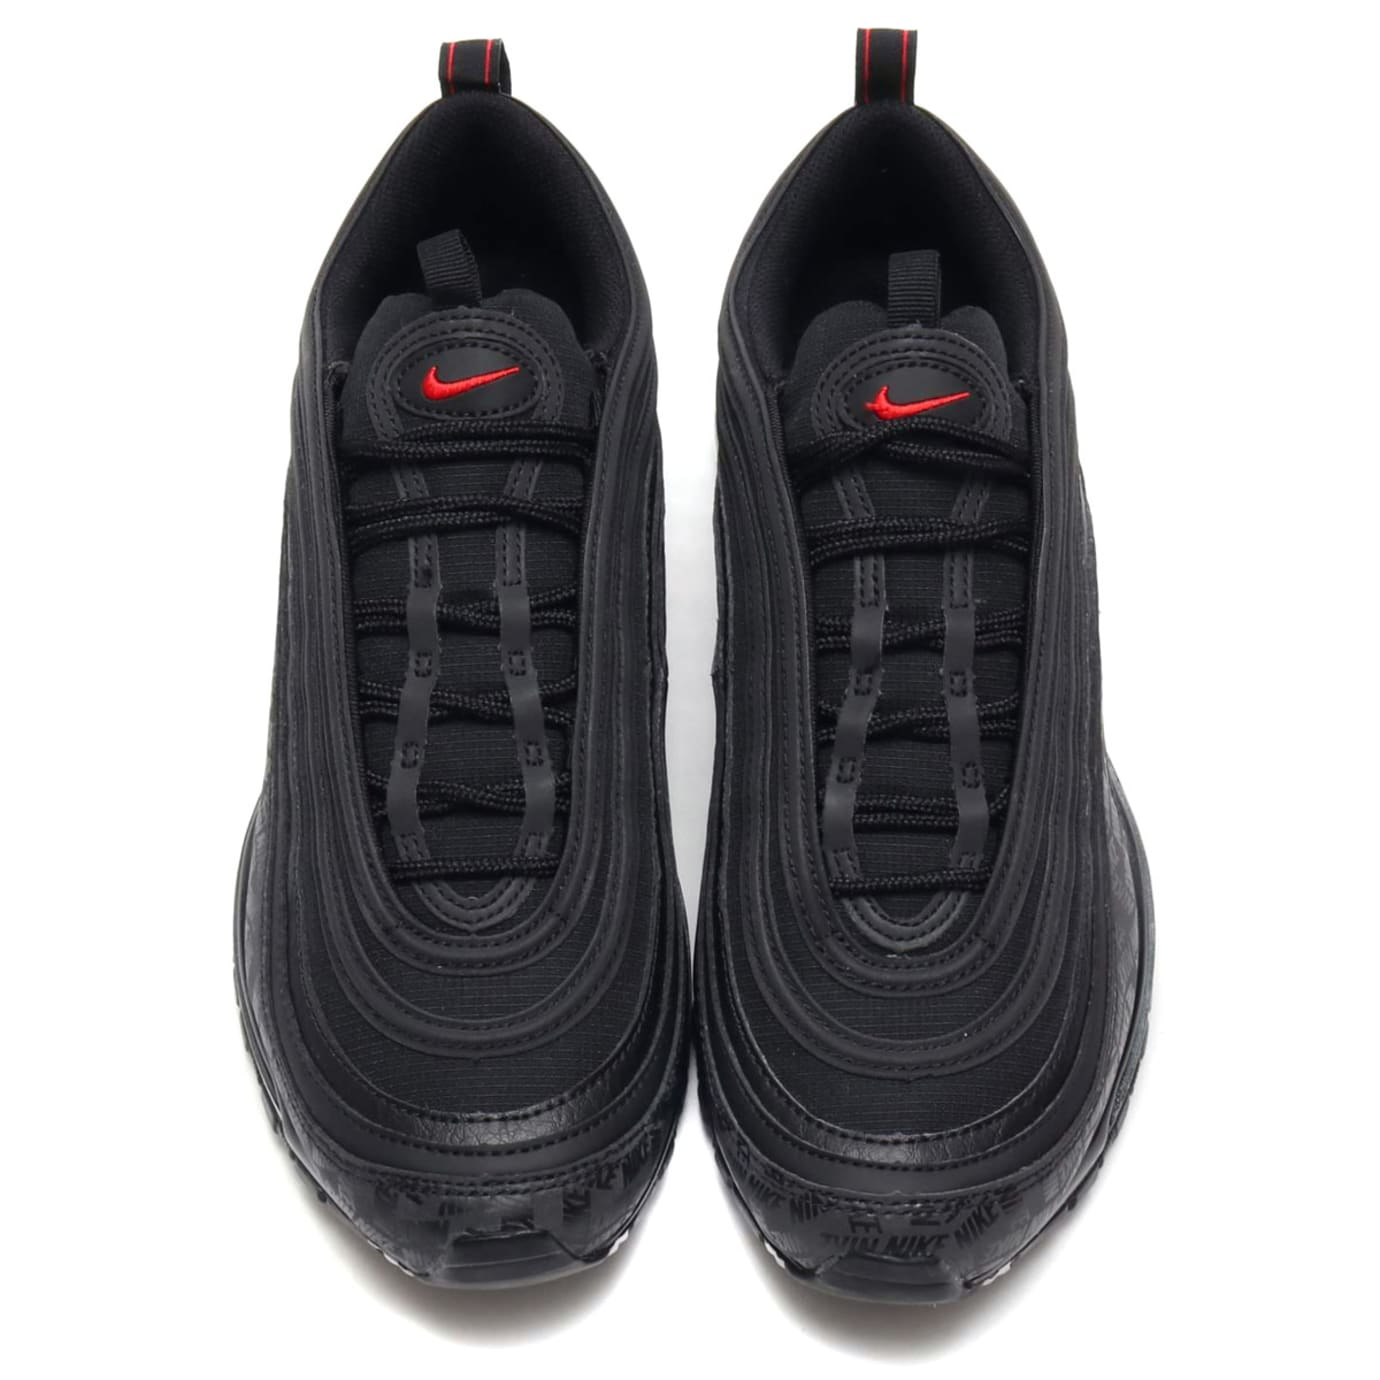 Nike Air Max 97 Black/University Red-Black AR4259-001 (Top)